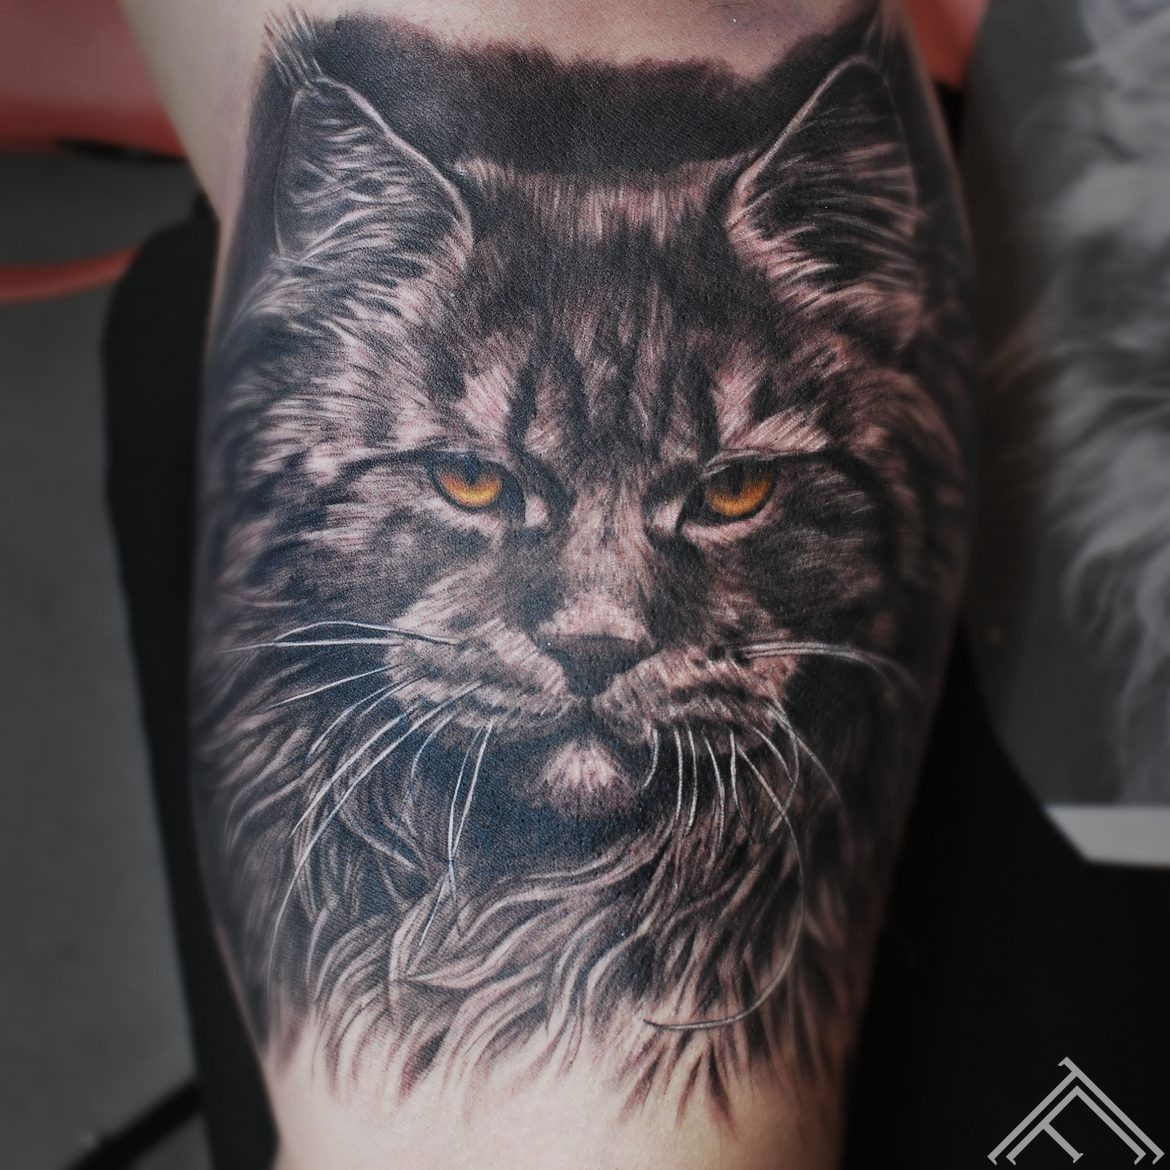 lynx-cat-lusis-kakis-tetovejums-tattoo-tattoofrequency-riga